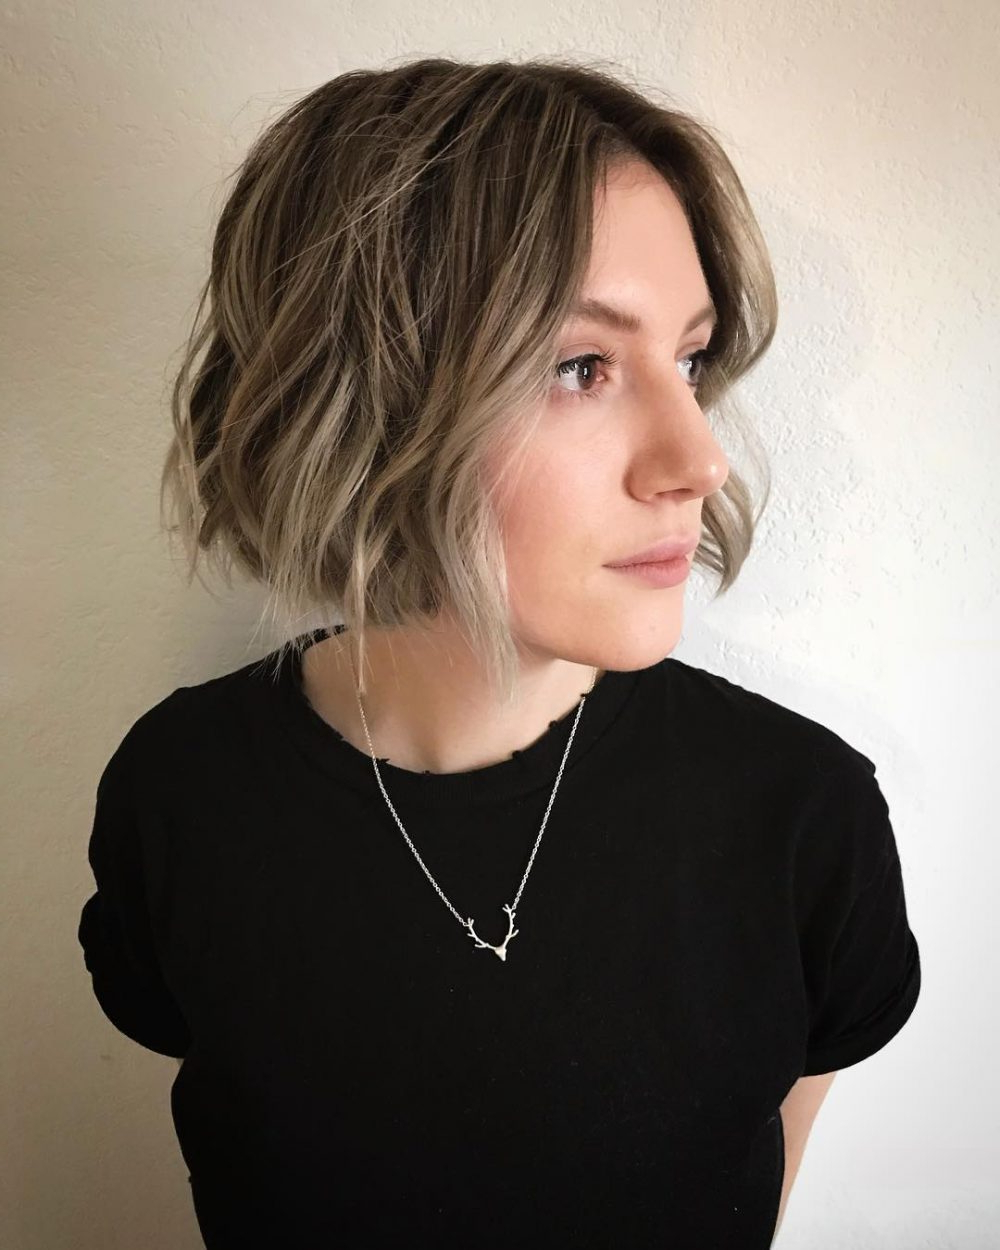 25 Chin Length Bob Hairstyles That Will Stun You (2018 Trends) For Jaw Length Bob Hairstyles With Layers For Fine Hair (View 10 of 20)